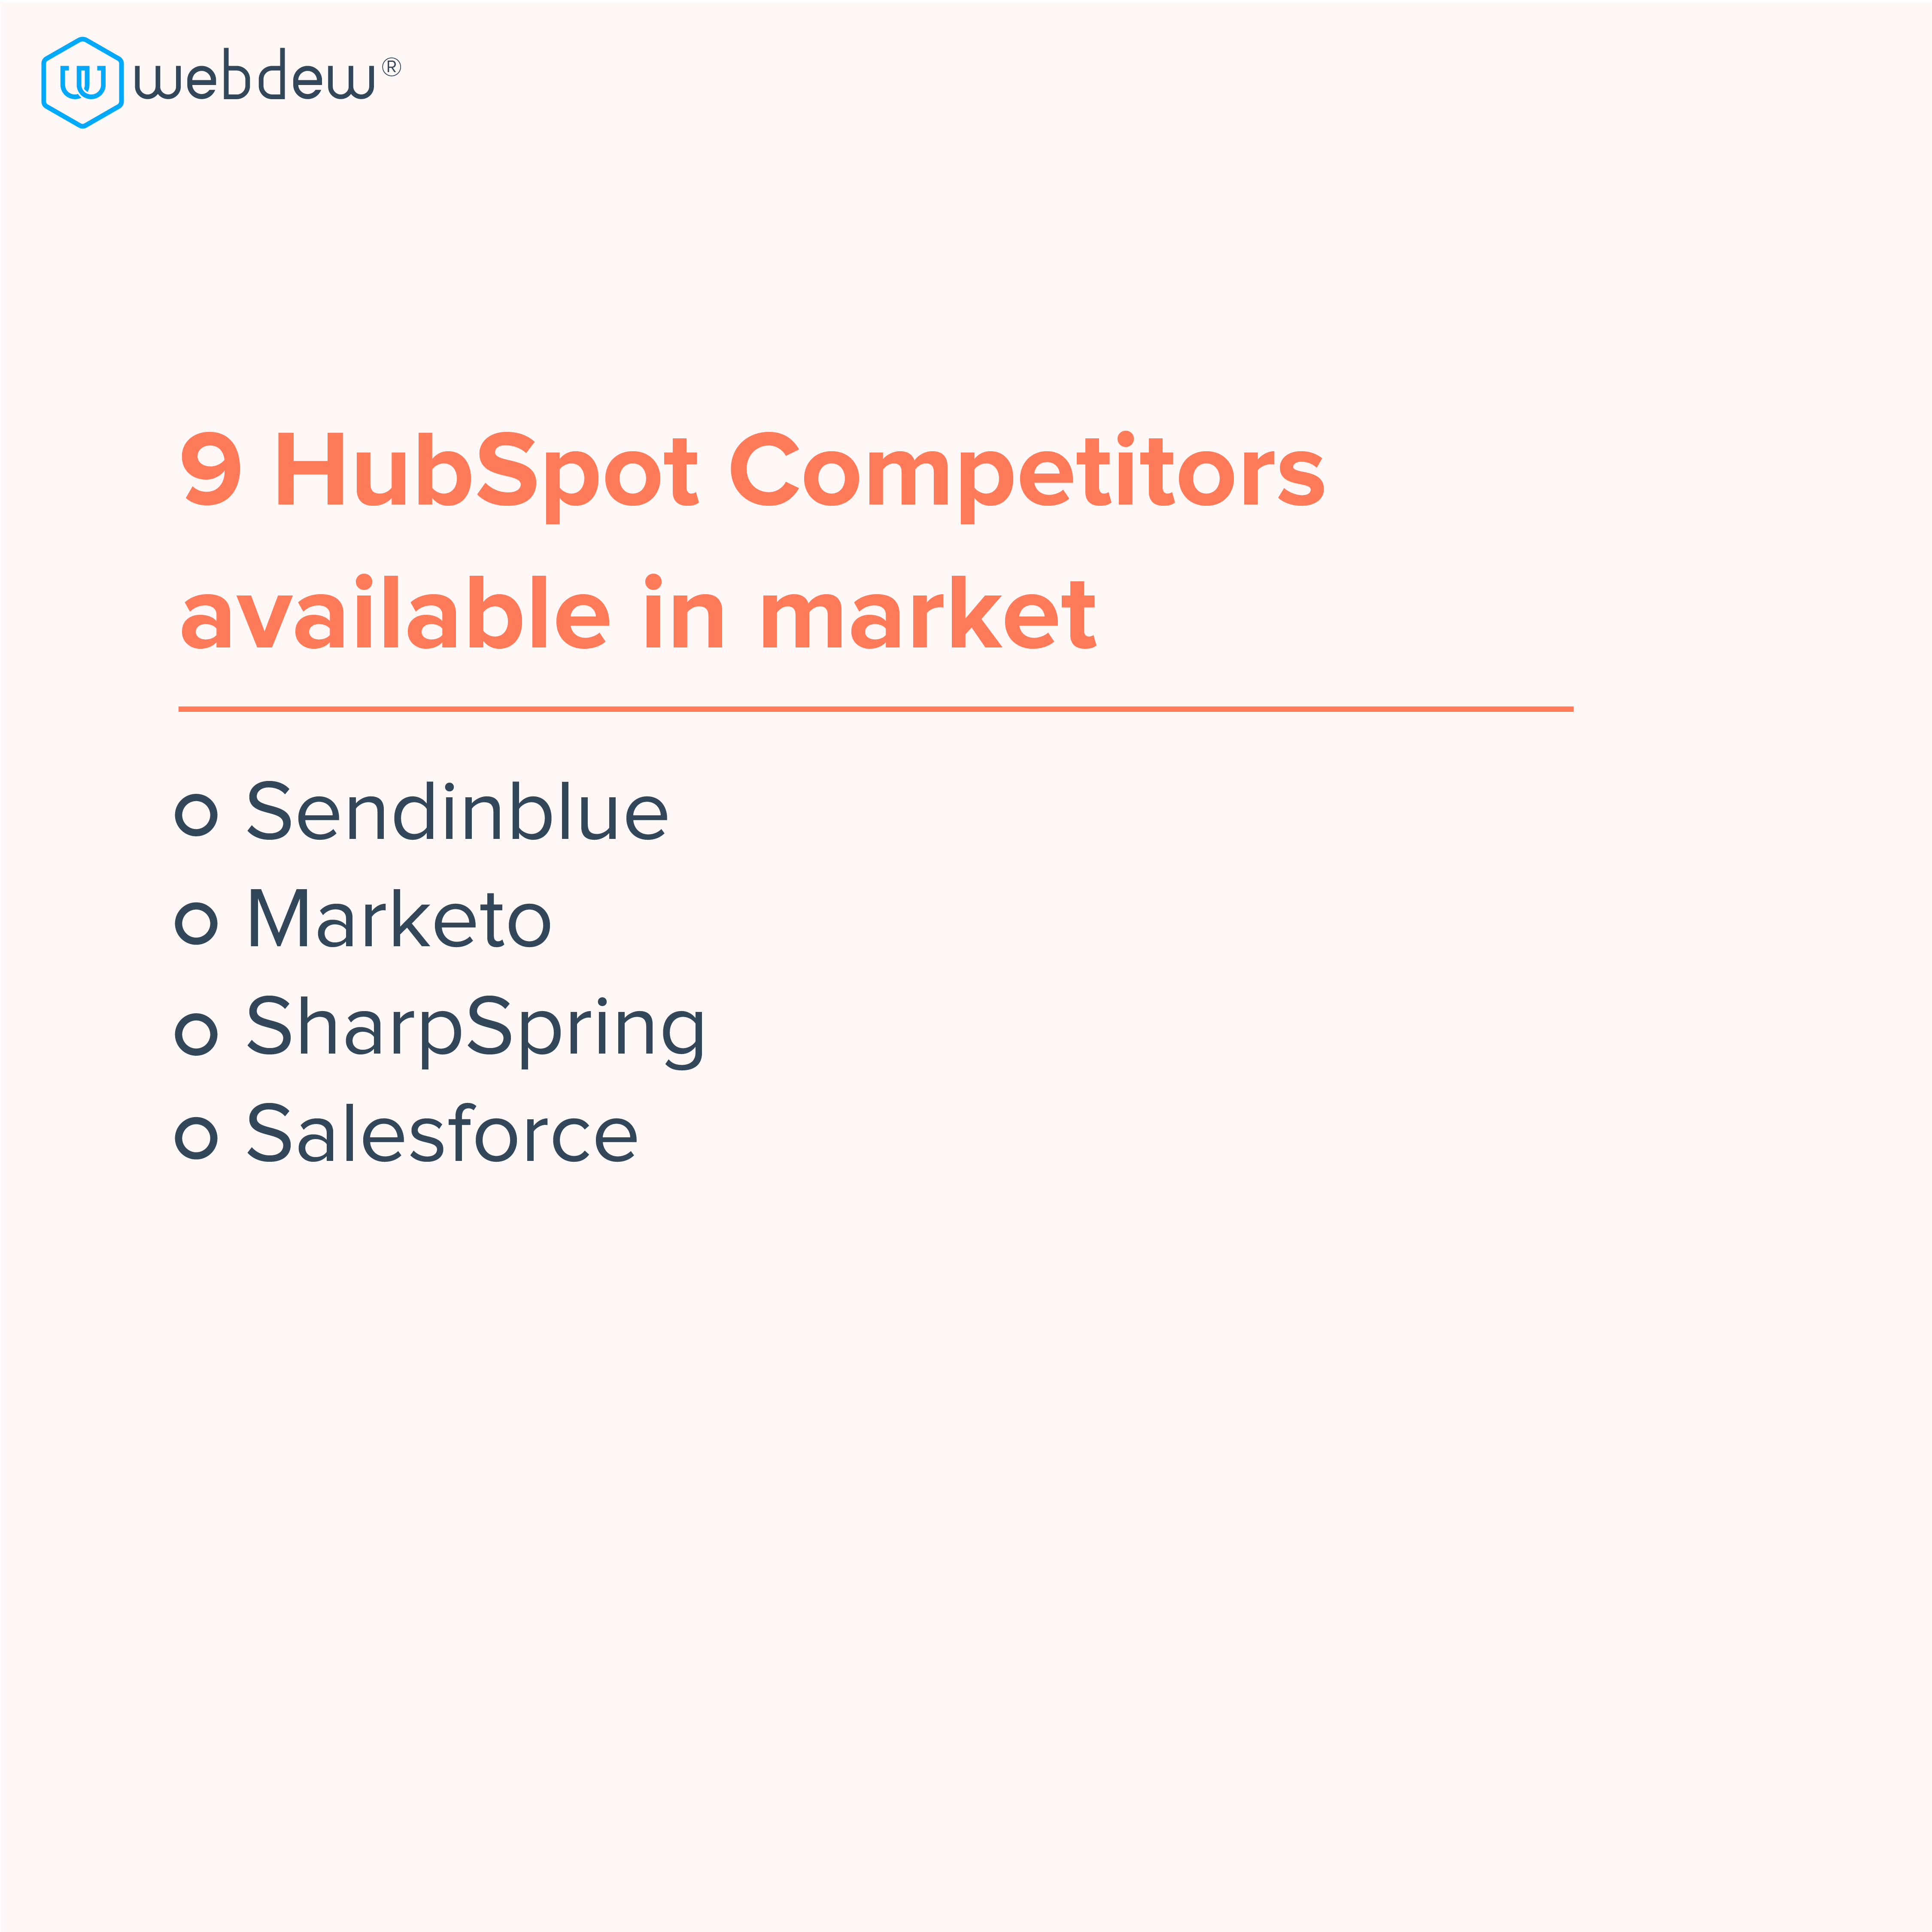 9 HubSpot companies available in market